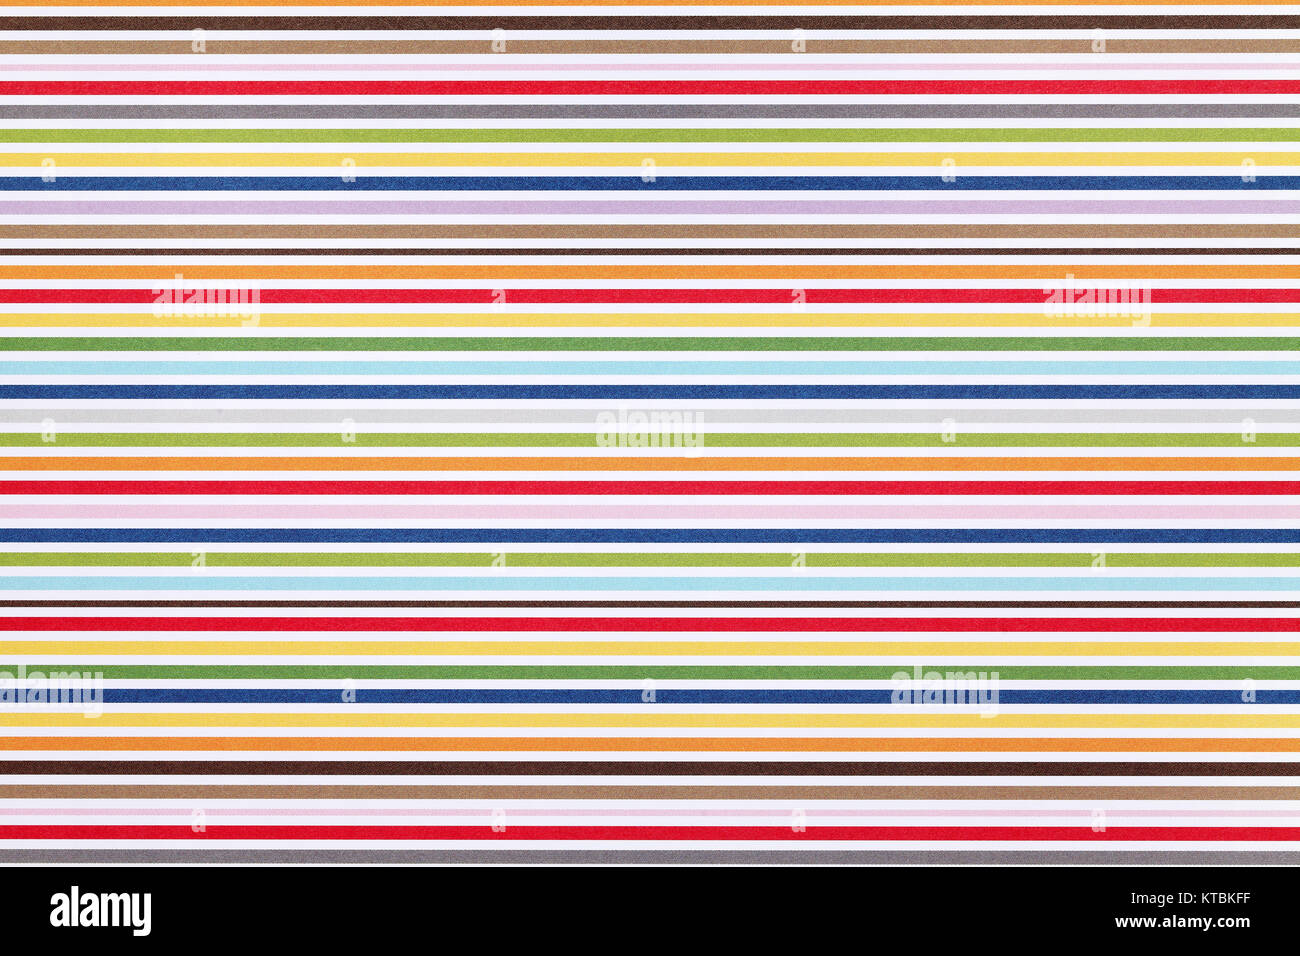 Close up of stripe pattern background - Stock Image